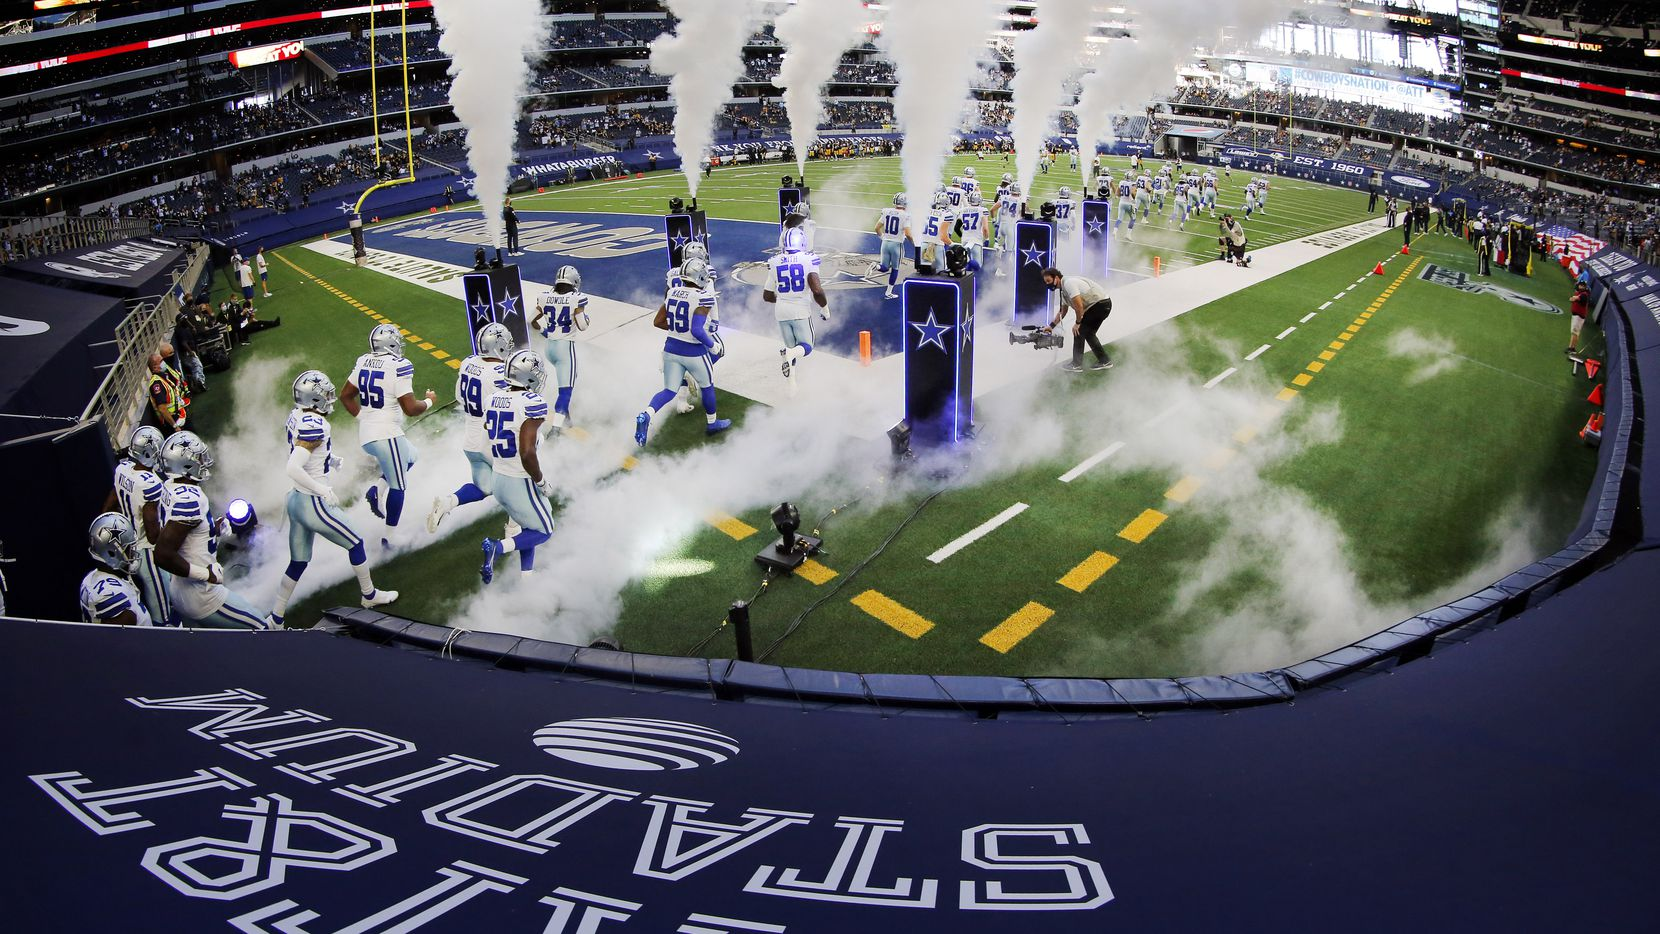 The Cowboys take the field to face the Steelers at AT&T Stadium in Arlington on Sunday, Nov. 8, 2020.